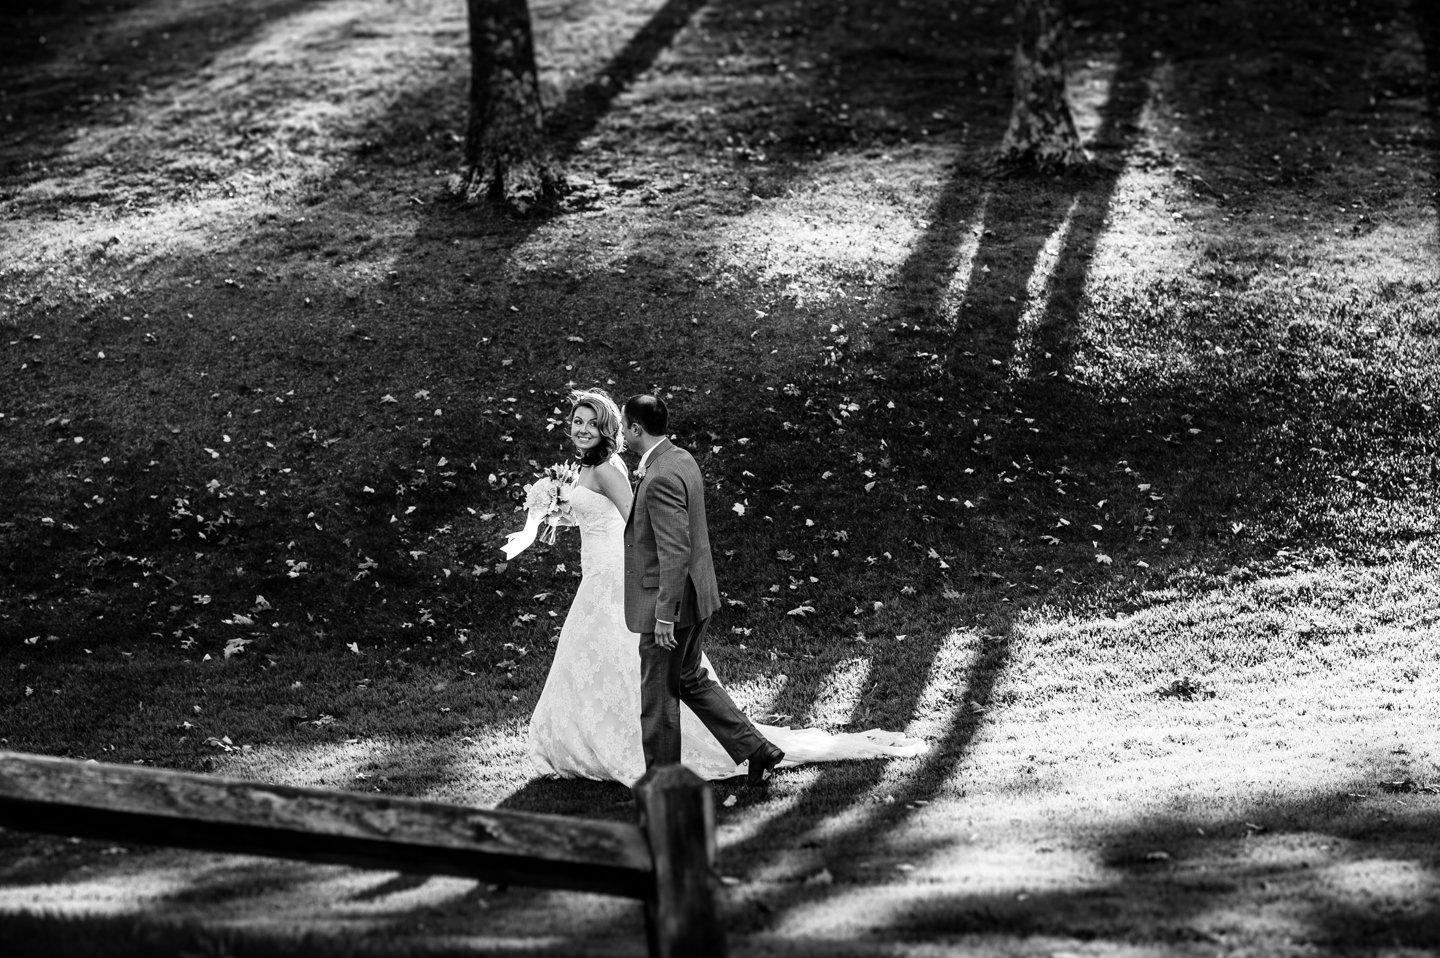 bride and groom walk through woods hand in hand